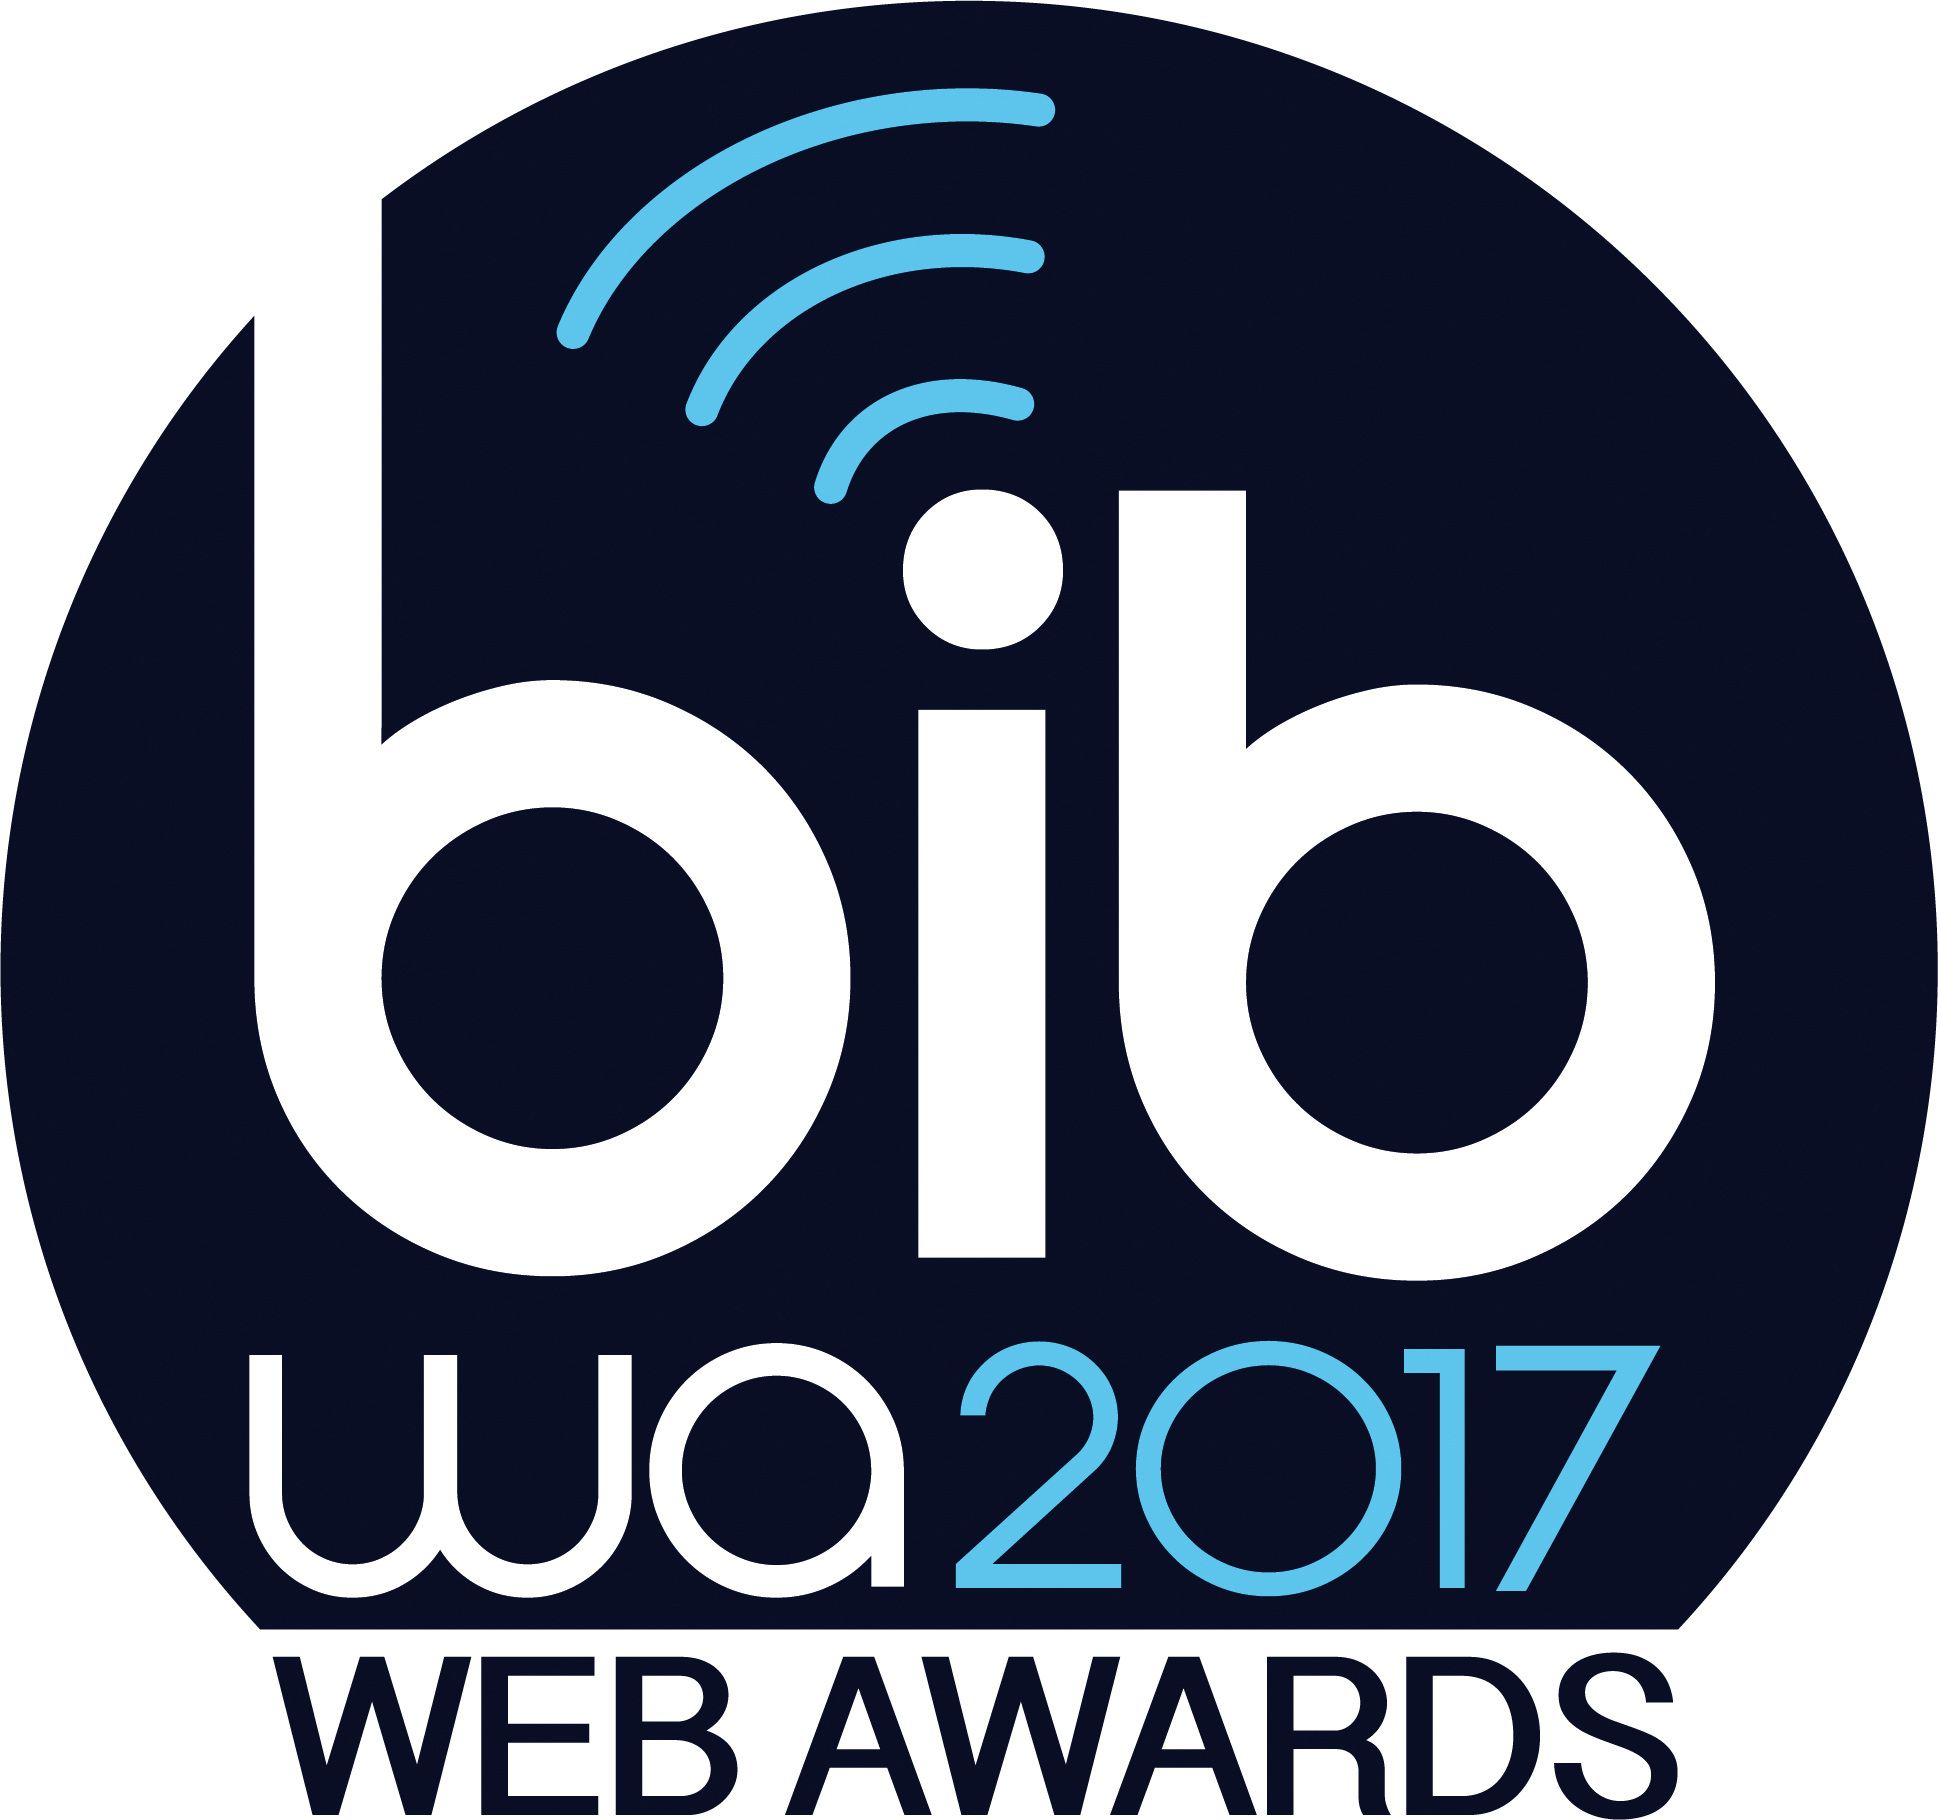 Bib Web Awards 2017